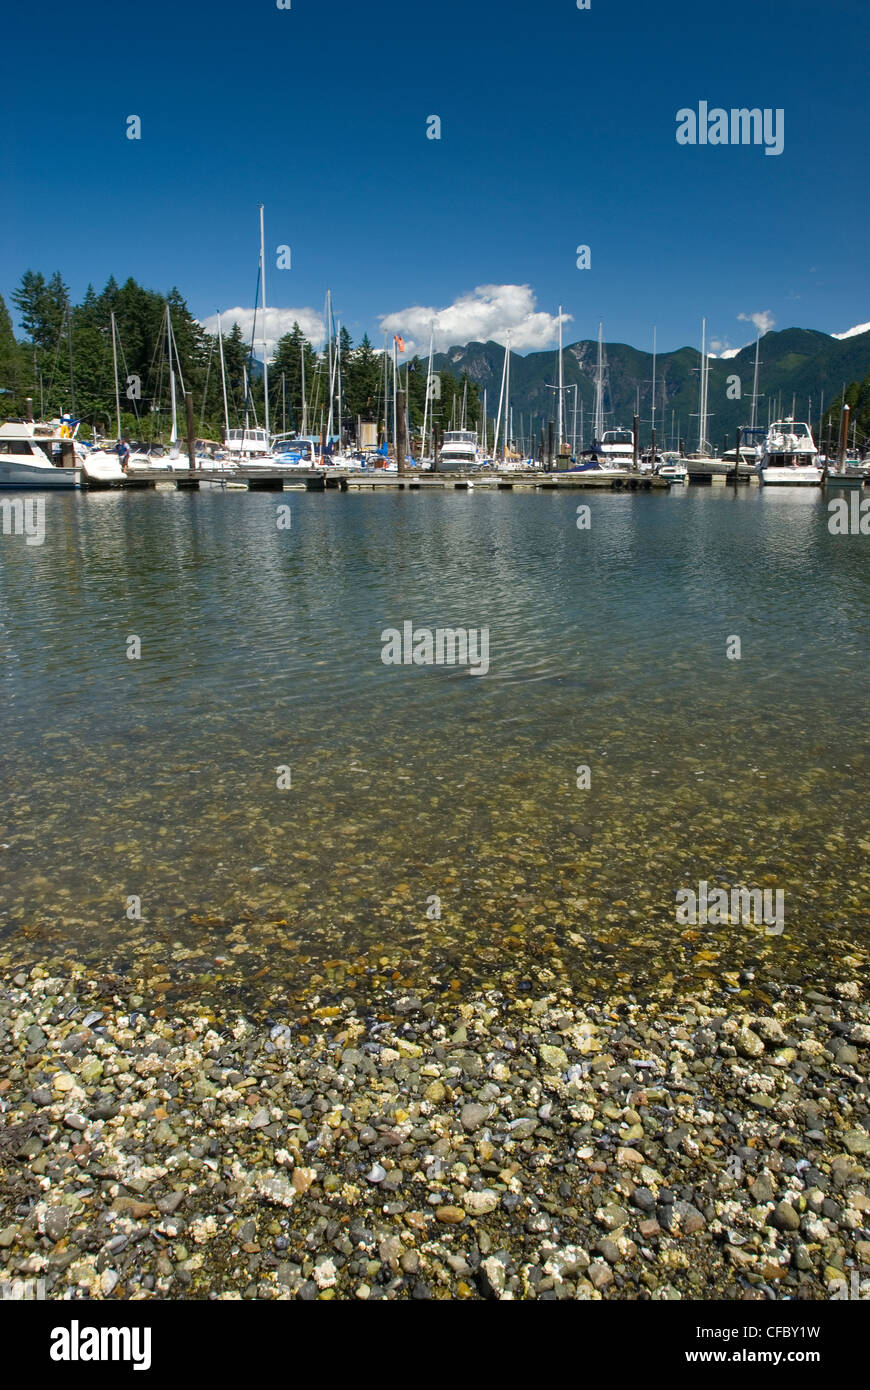 The small harbour of Snug Cove Bowen Island BC Canada - Stock Image